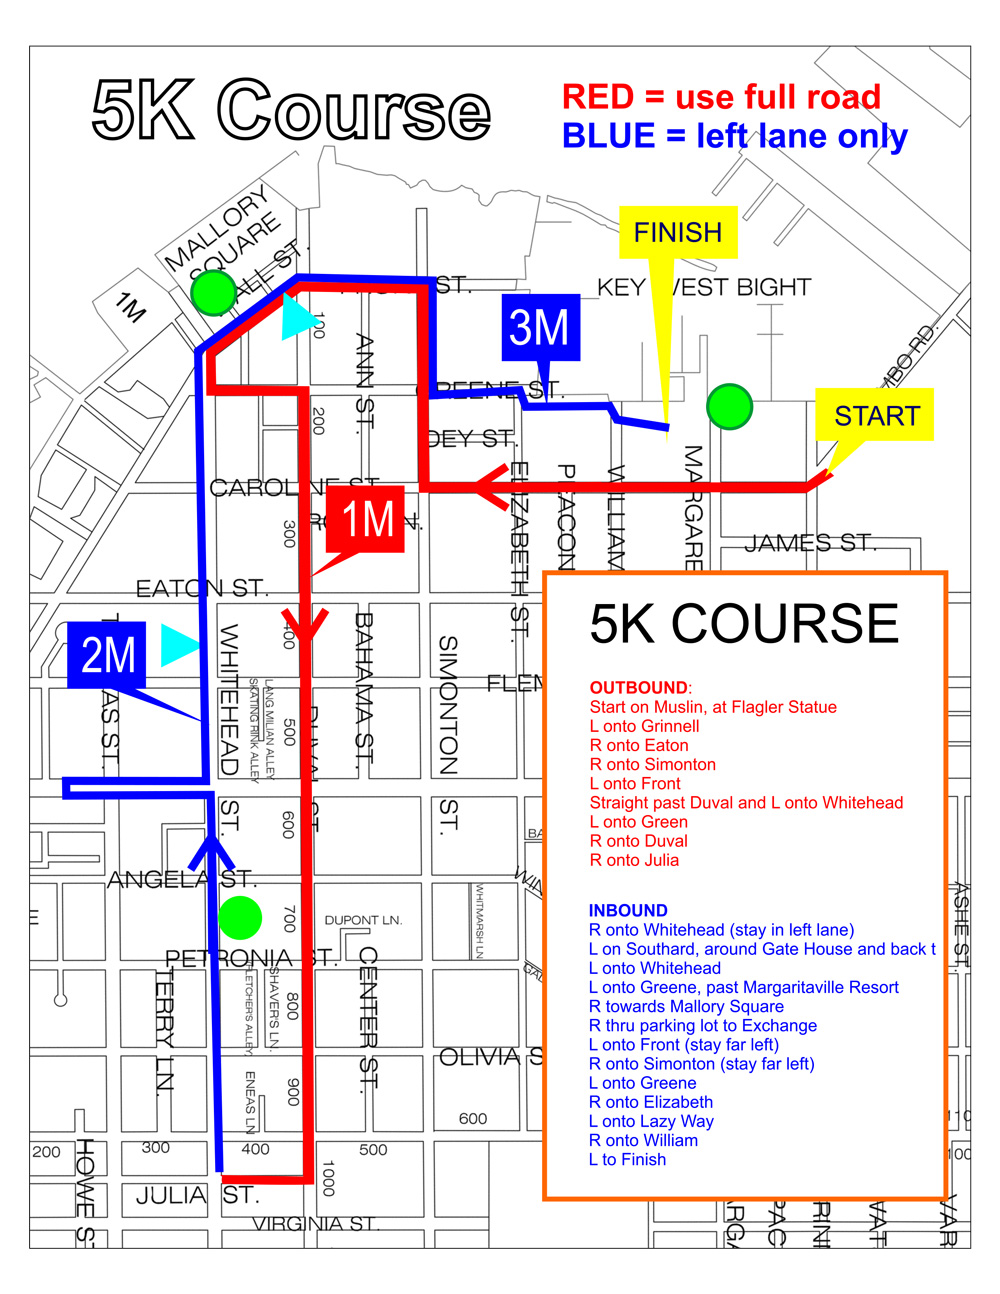 Key West Half Marathon & 5K - Course map | Key West Half Marathon Key West Street Map Print on key west cemetery, key west maps and brochures, key west aerial view, key west bars and restaurants, key west mapquest, key west truman waterfront park, key west maps to print, key west town, key west fl street map, key west trolley route, key west weather 10 day, key west naval base 1970, key west beaches, key west city, key west historic seaport restaurants, key west shopping stores, key west fishing maps, key west fishing trips, key west street view,